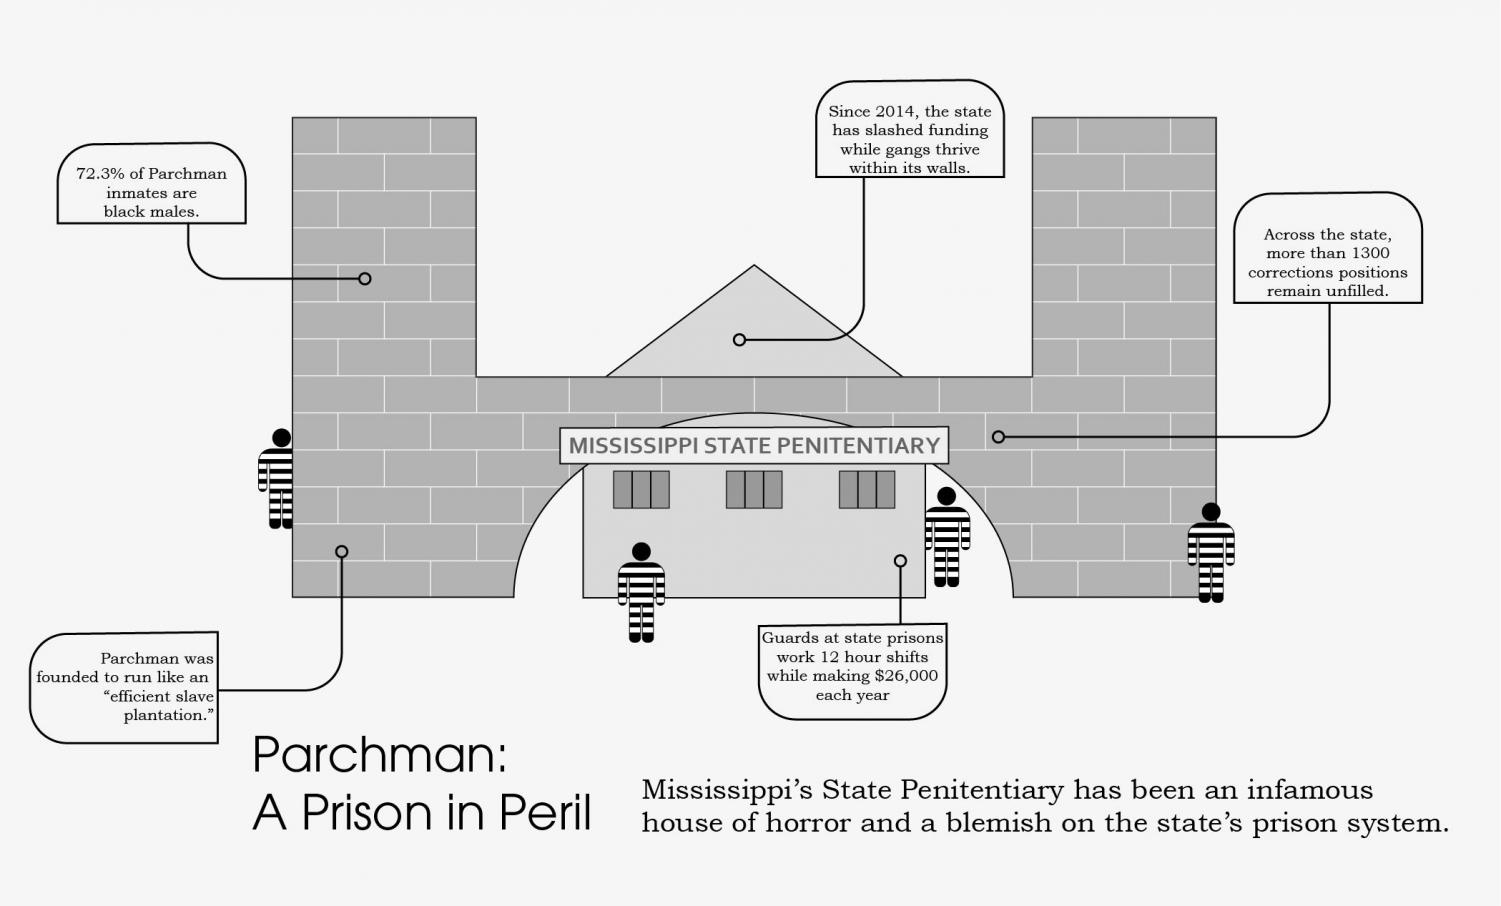 Parchman has yet to correct its racial history and continues to be evidence of systematic disenfranchisement of African Americans within the prison system.